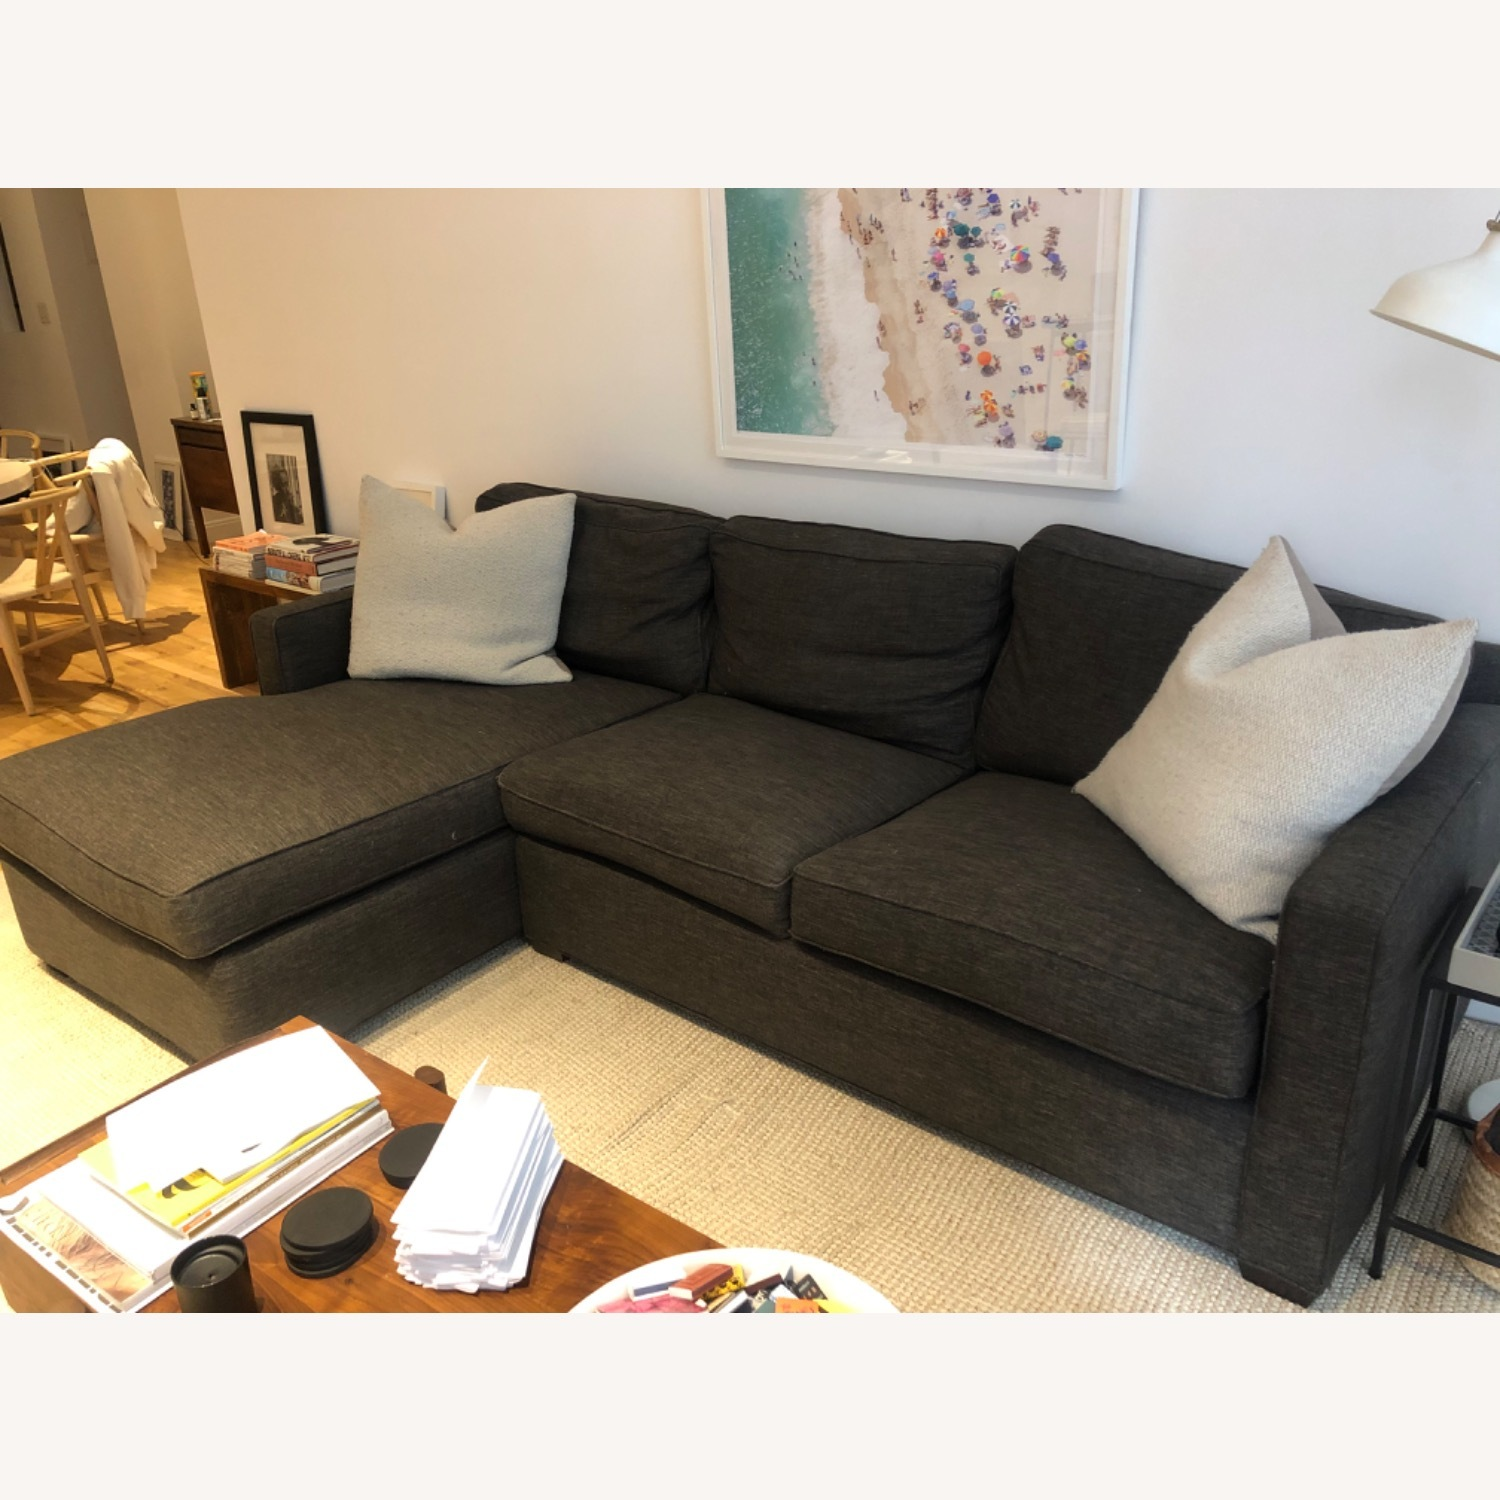 Crate and Barrel Sectional Sofa - image-3